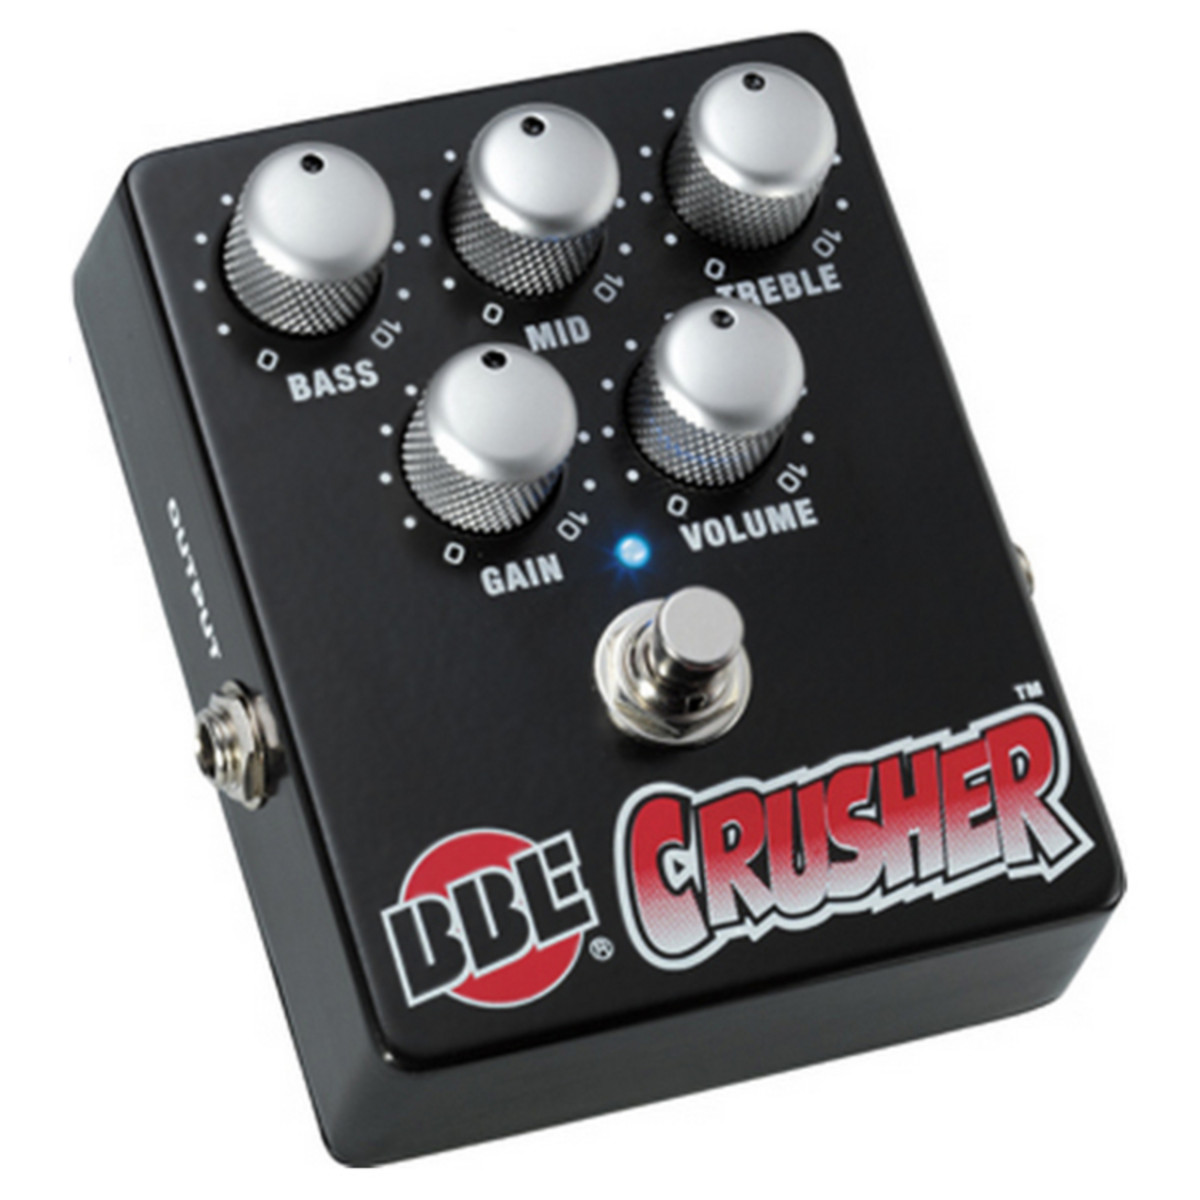 DISC BBE Crusher Distortion Effects Pedal at Gear4music.ie